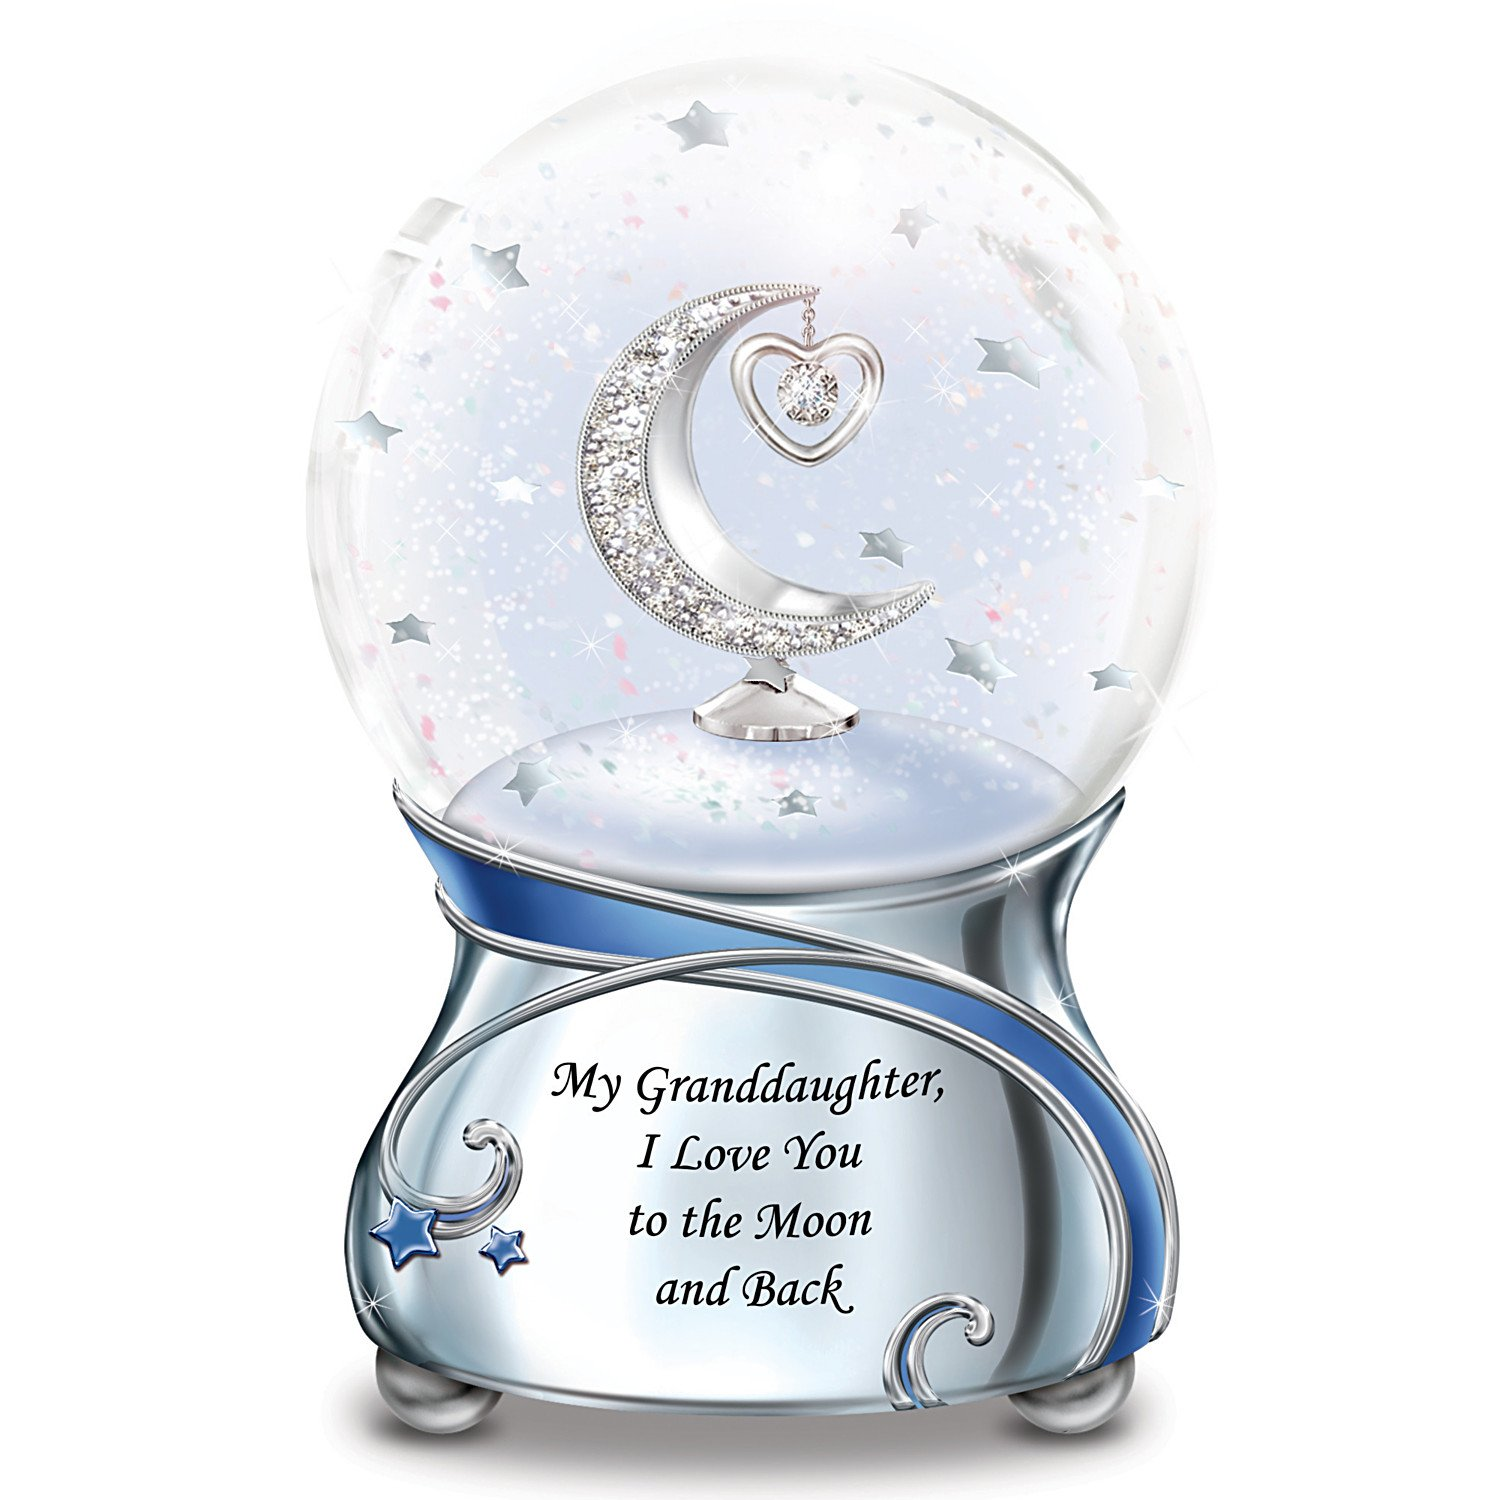 Snowglobe With Swarovski Crystal For Granddaughter Plays Always In My Heart by The Bradford Exchange by Bradford Exchange (Image #1)